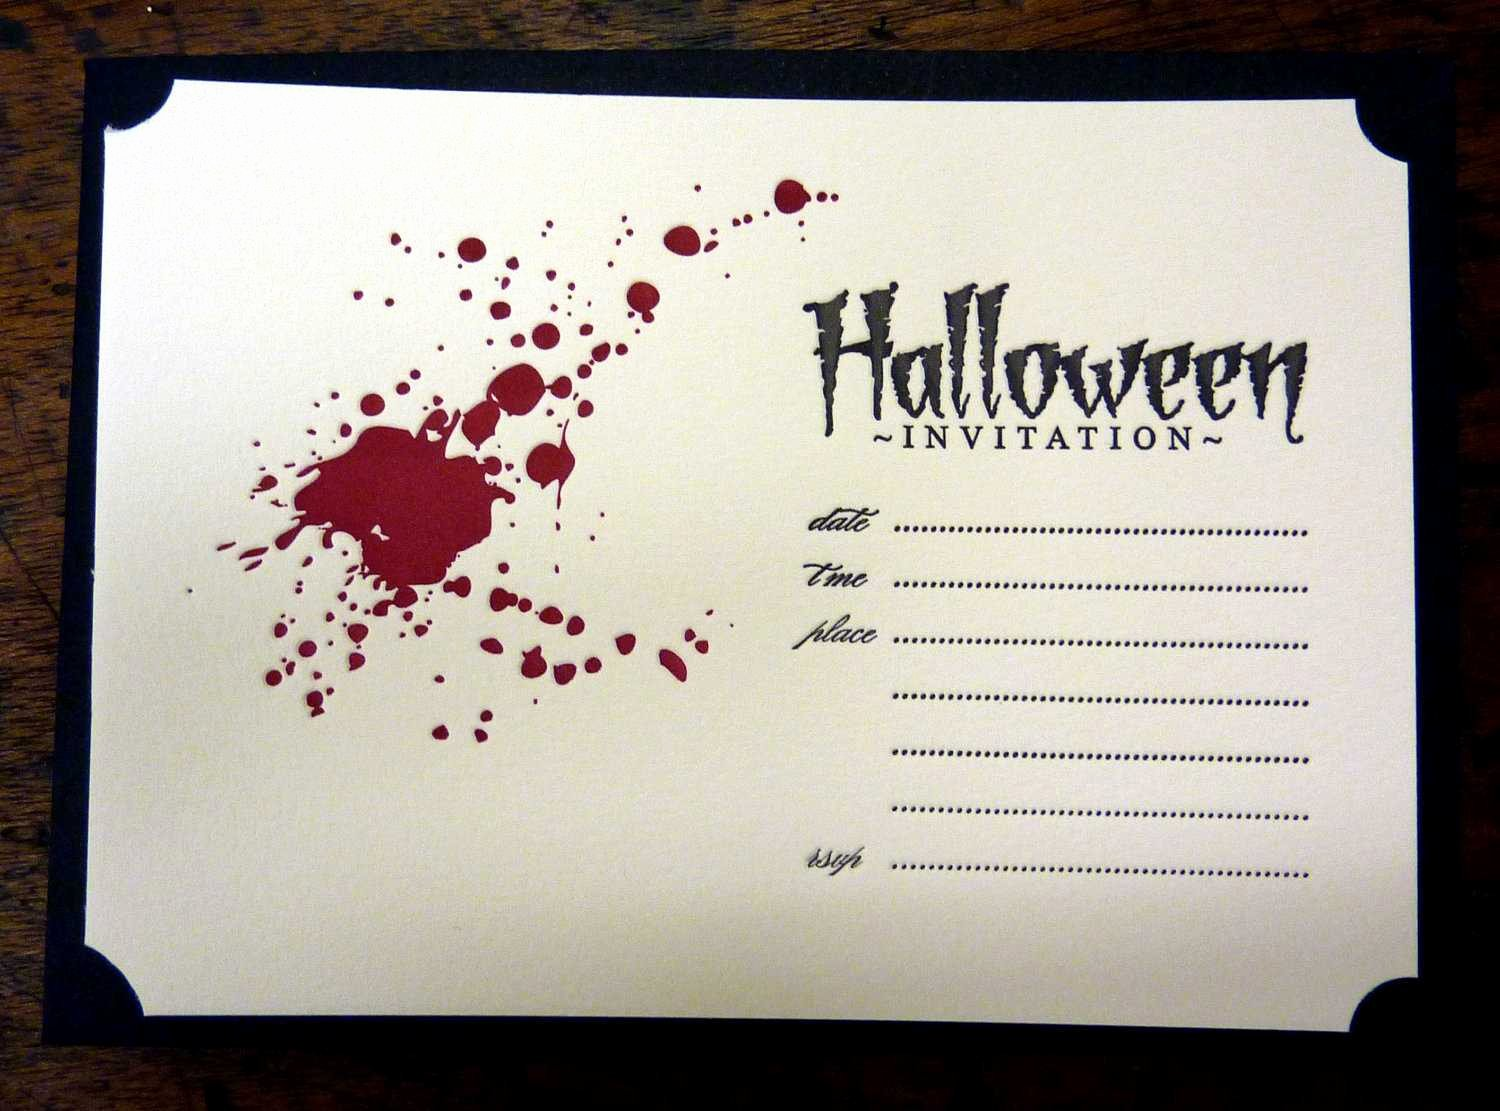 Halloween Party Invite Template Awesome Halloween Invitation Ideas Template